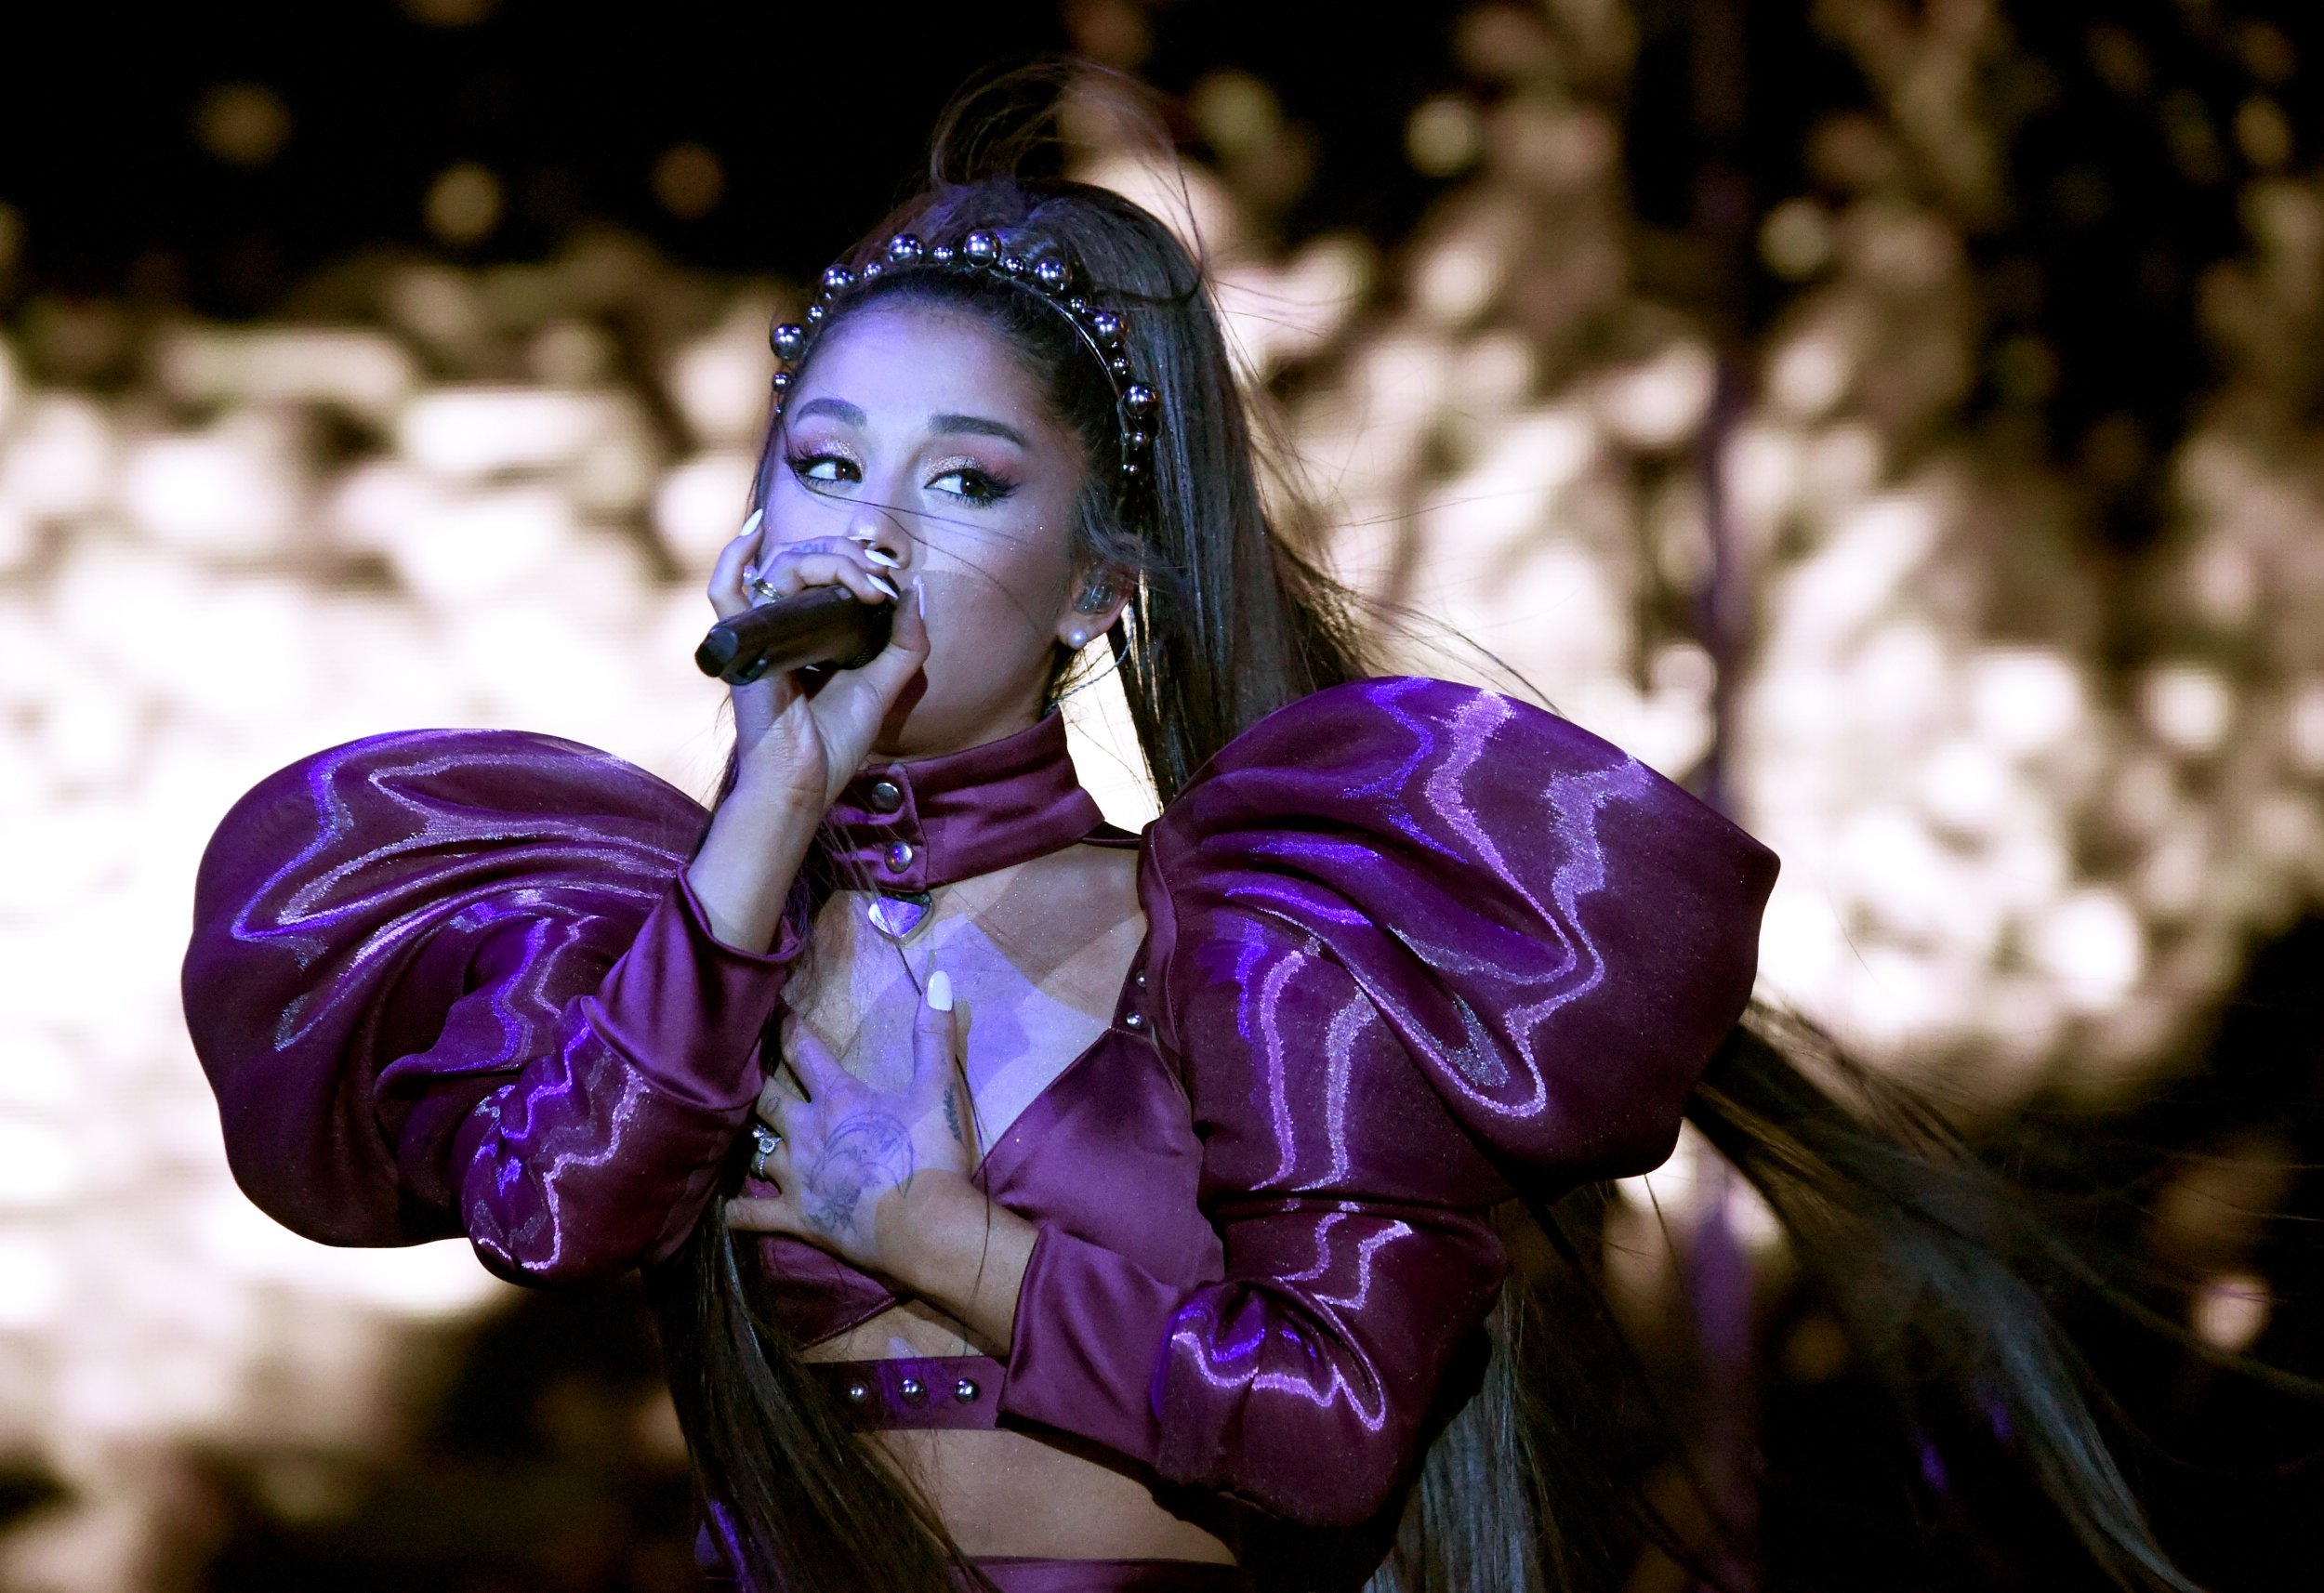 INDIO, CALIFORNIA - APRIL 14: Ariana Grande performs on Coachella Stage during the 2019 Coachella Valley Music And Arts Festival on April 14, 2019 in Indio, California. (Photo by Kevin Mazur/Getty Images for AG)